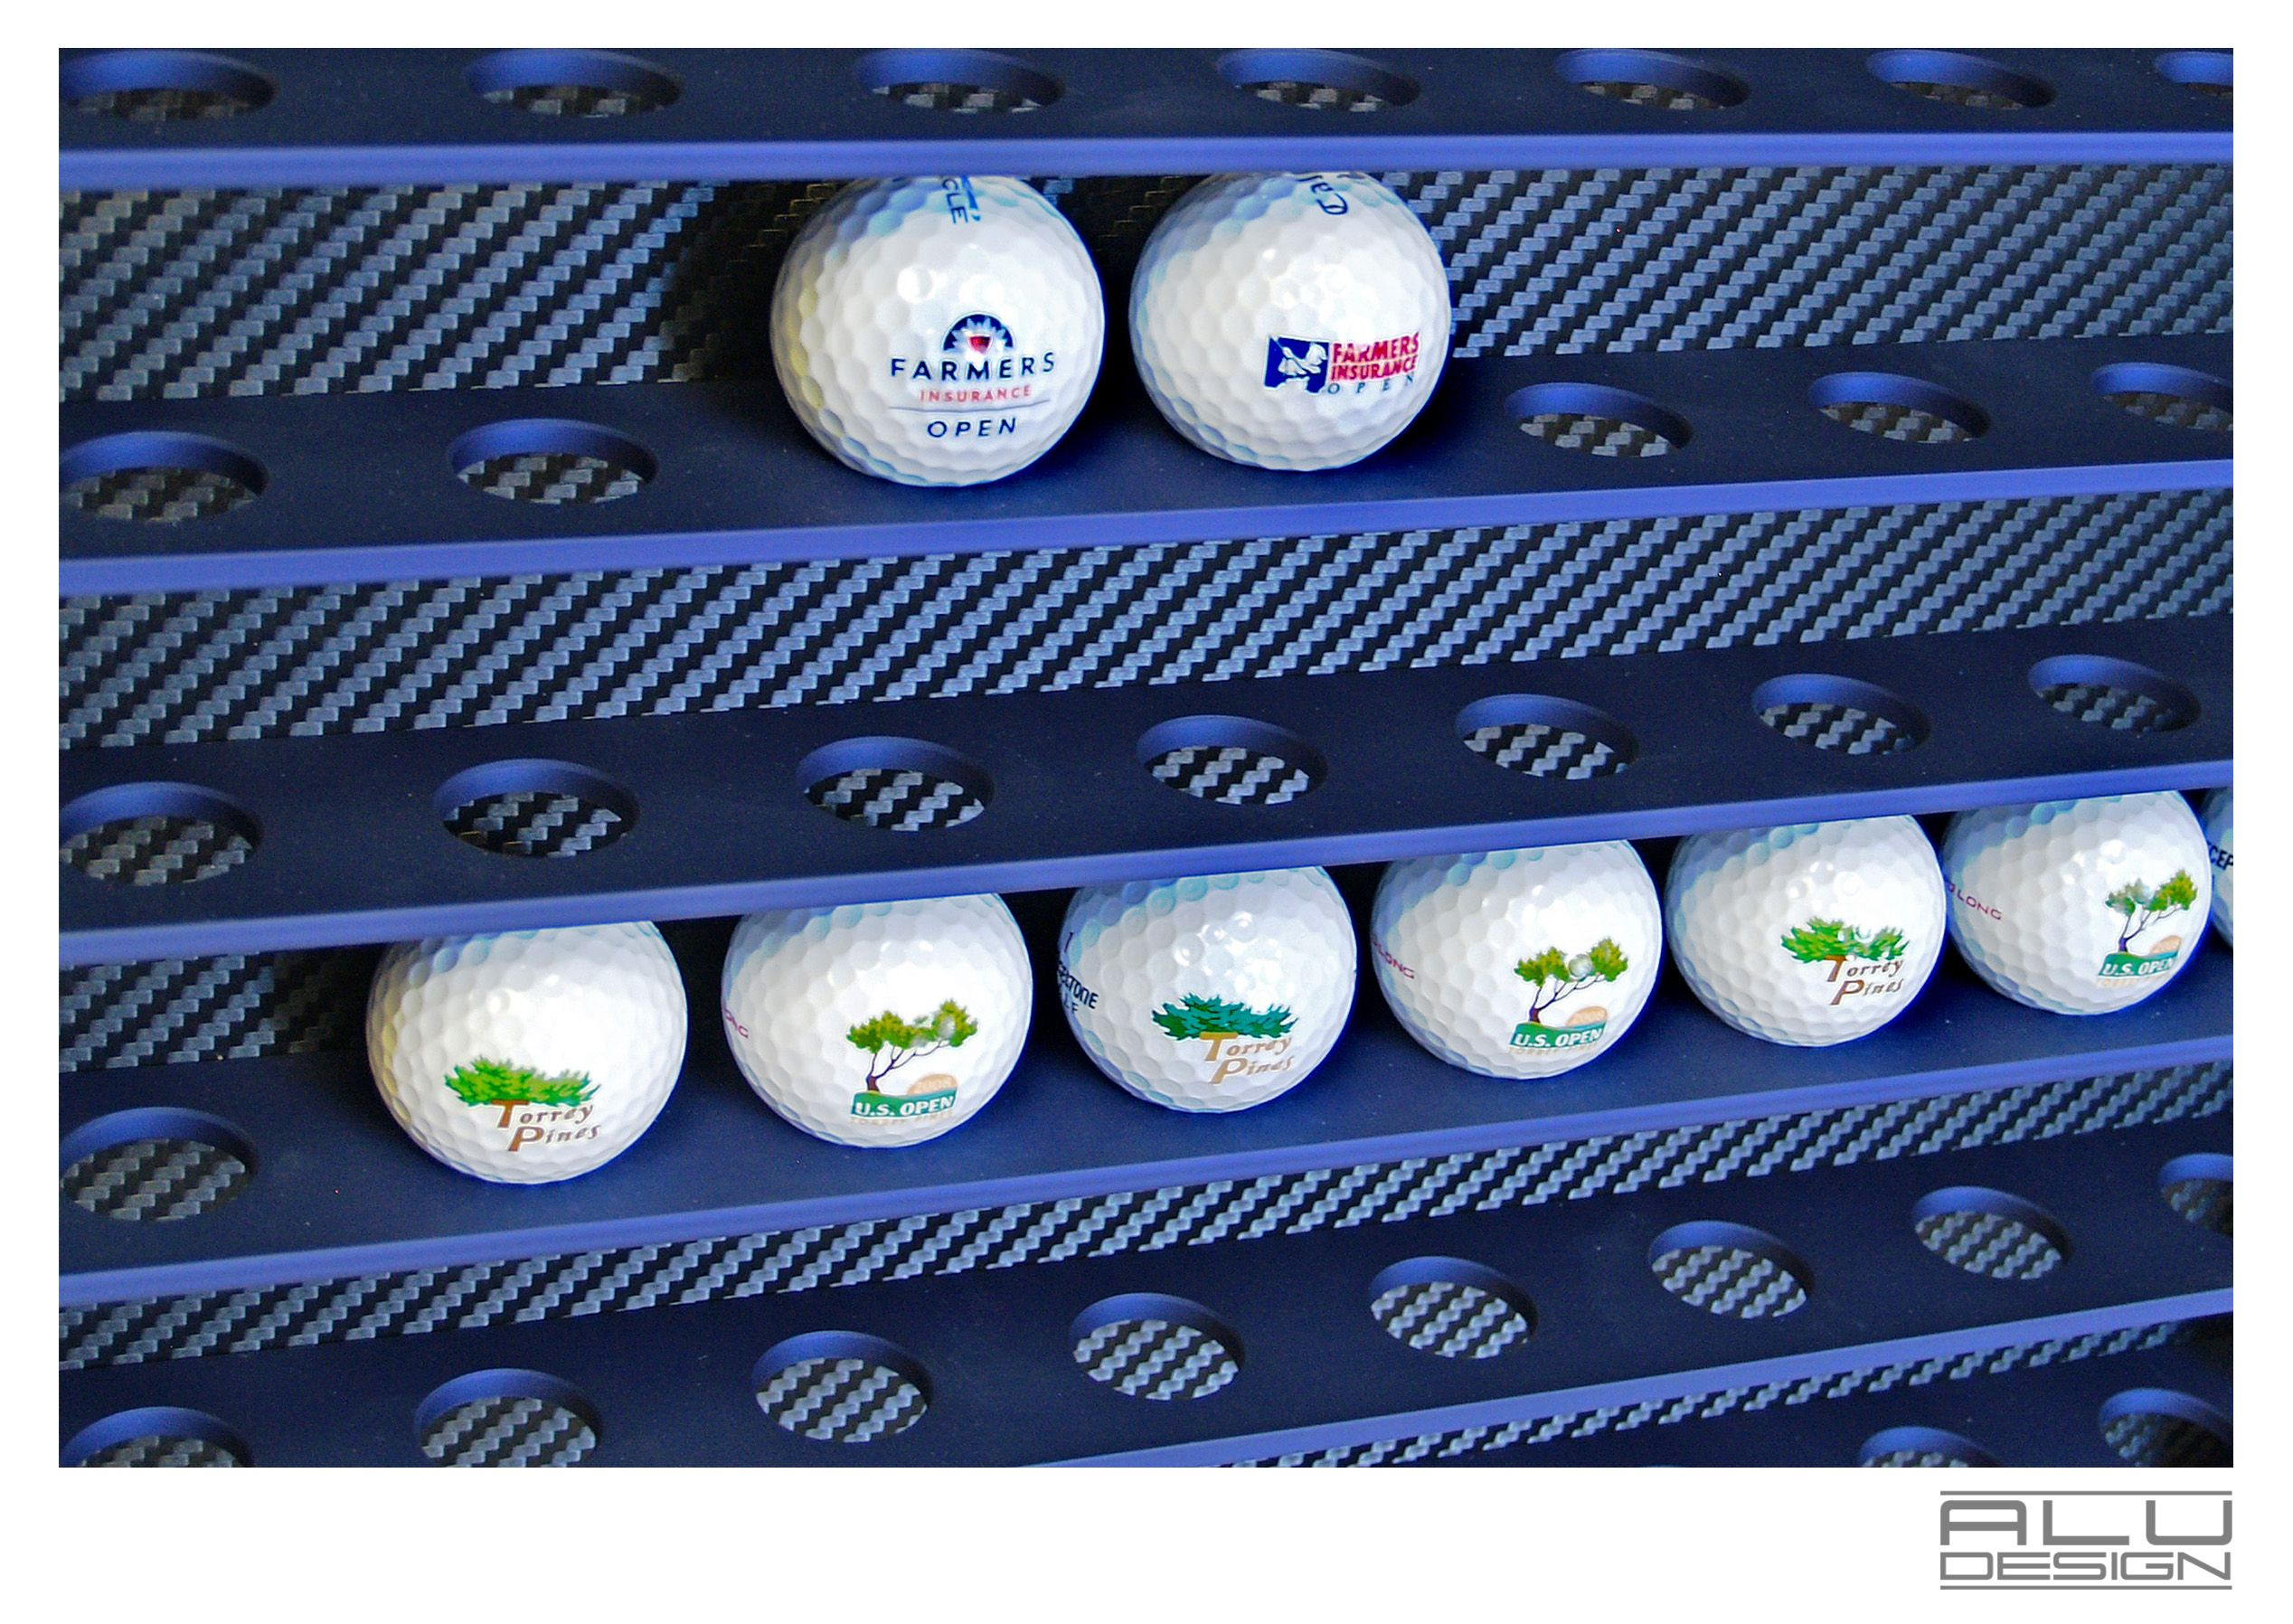 Exclusive modern golf ball display case racks for your golf ball